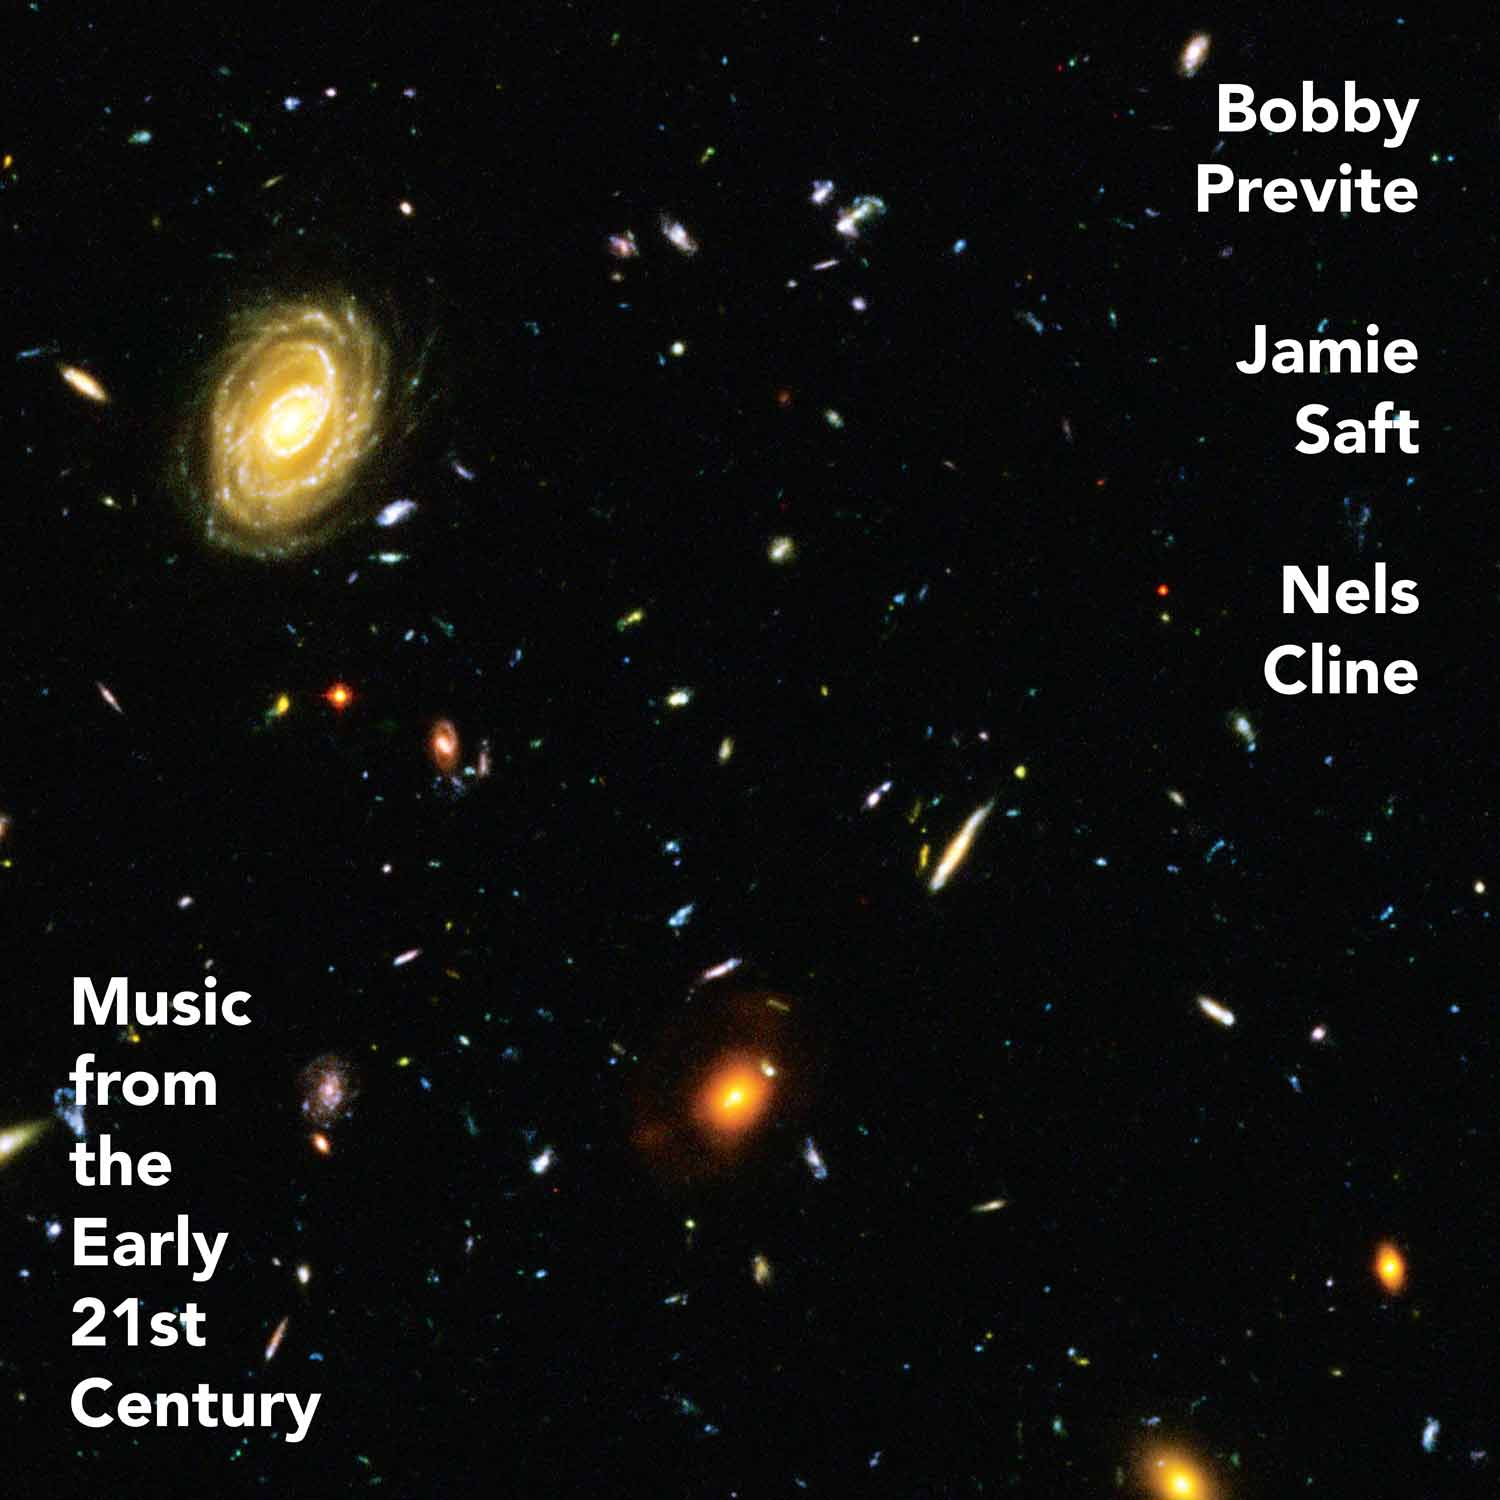 Bobby Previte / Jamie Saft / Nels Cline - Music From The Early 21st Century (RareNoise Records, 2020)